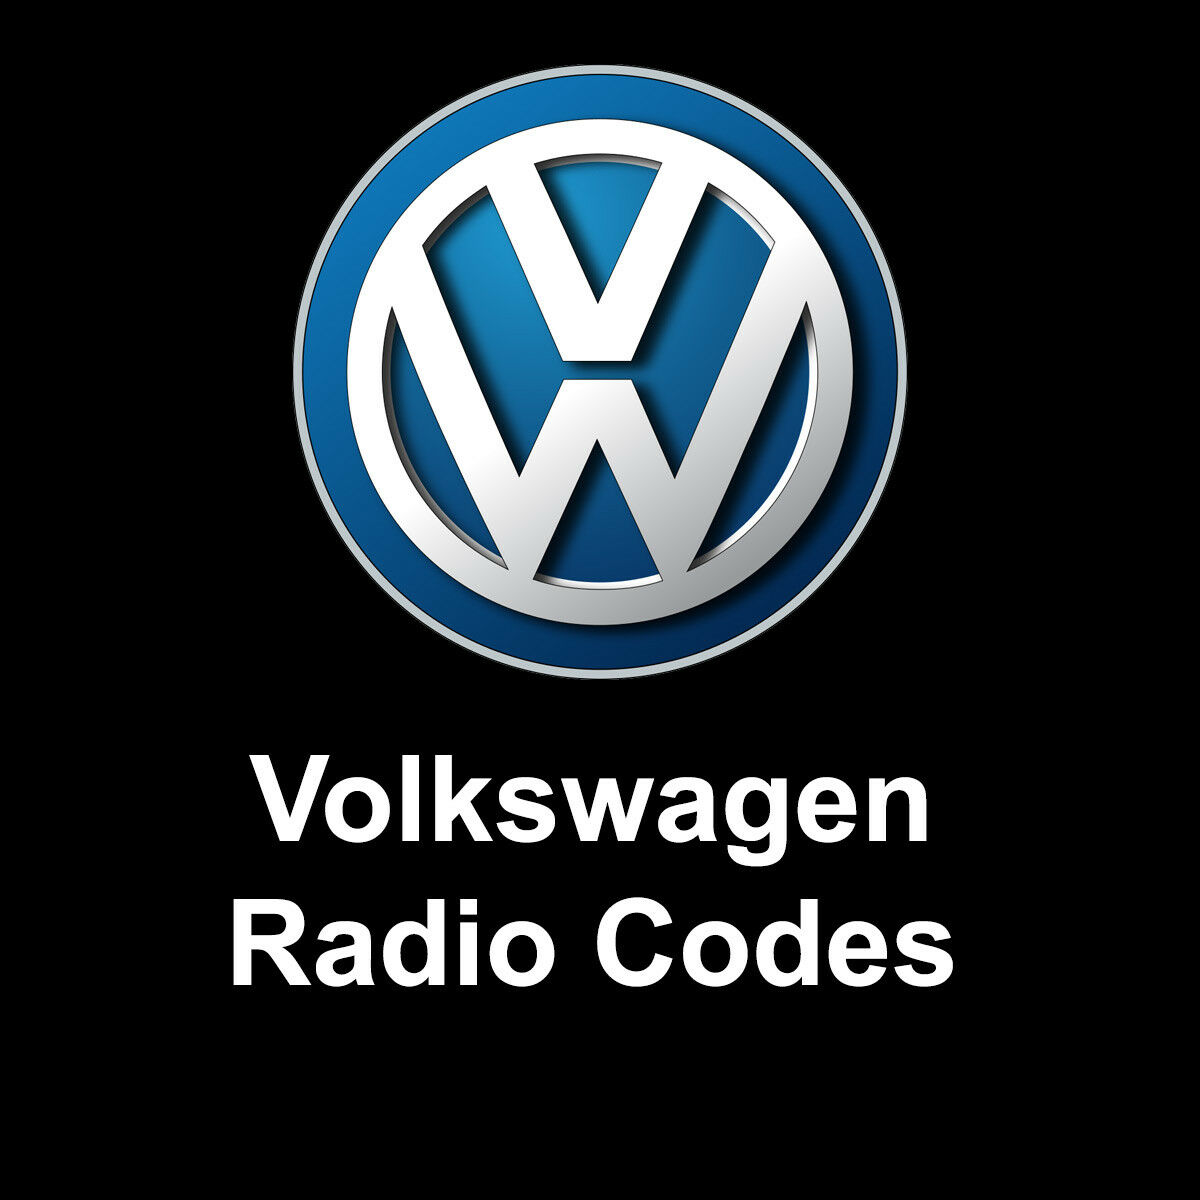 Details about VW Volkswagen Radio Code Unlock Stereo Codes PIN   RCD 310  300 200 210 215